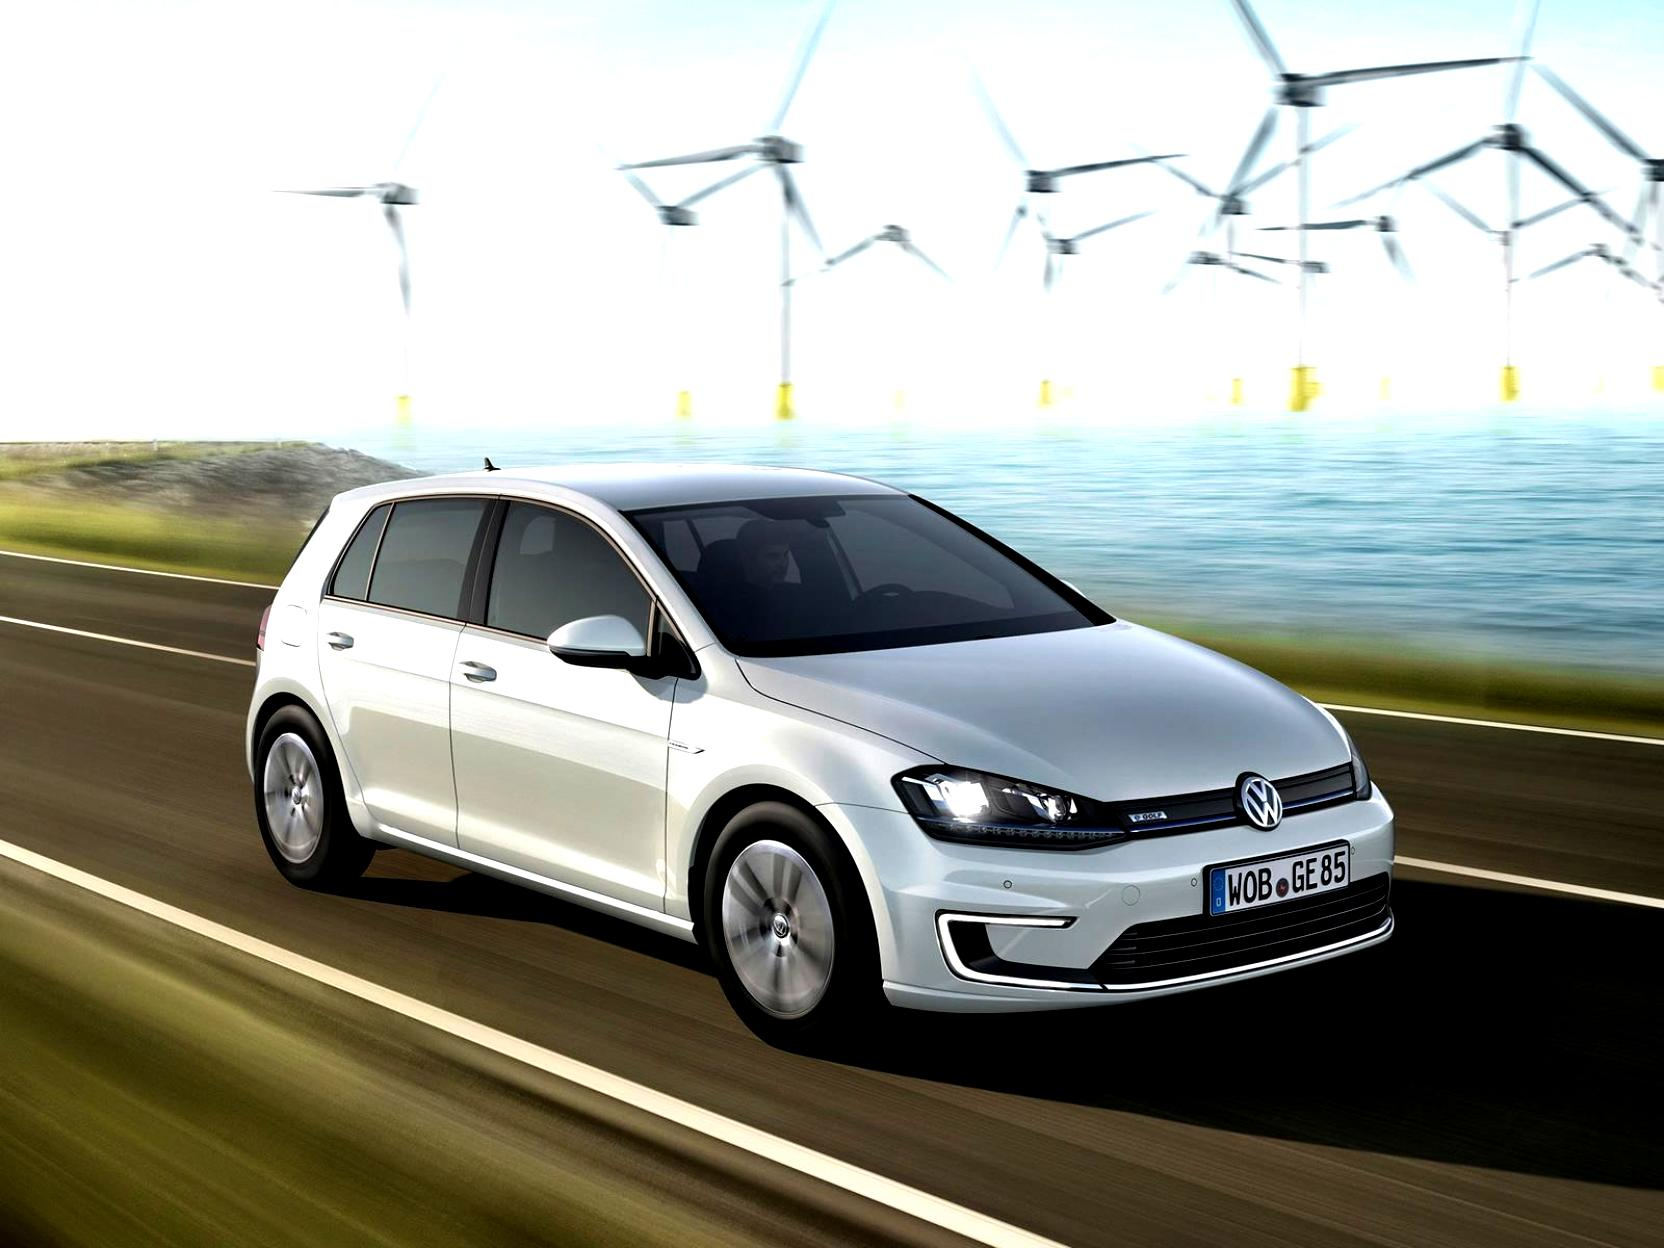 Volkswagen E-Golf 2014 #23